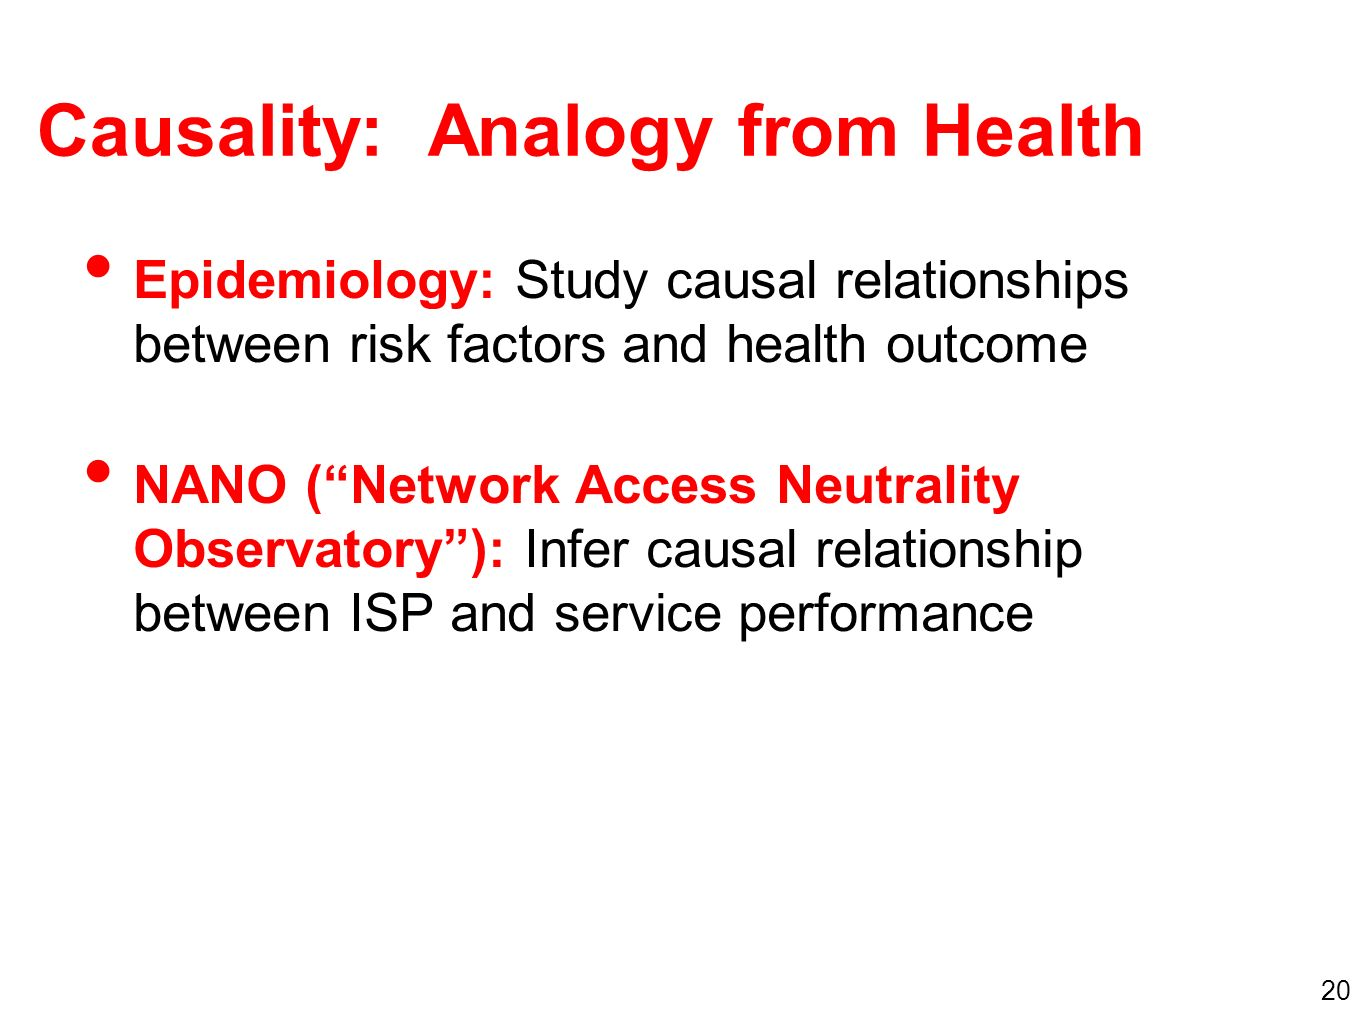 20 Causality: Analogy from Health Epidemiology: Study causal relationships between risk factors and health outcome NANO (Network Access Neutrality Observatory): Infer causal relationship between ISP and service performance